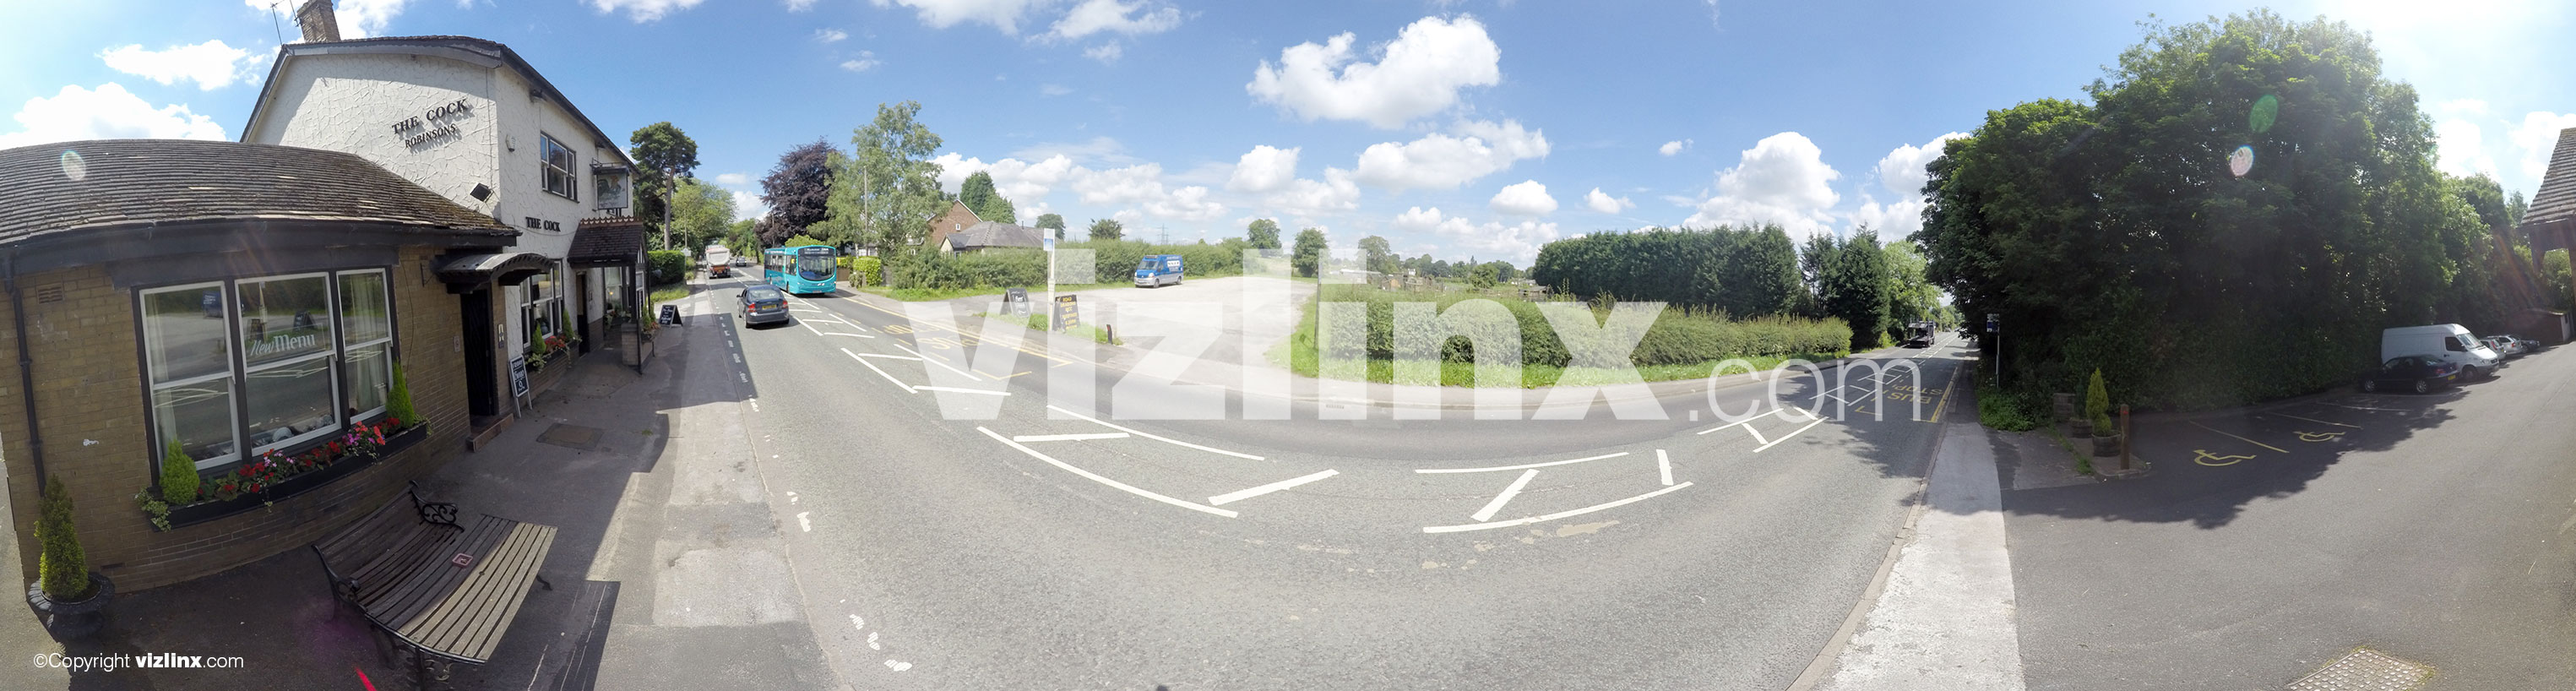 360 panorama of The Cock Inn Henbury